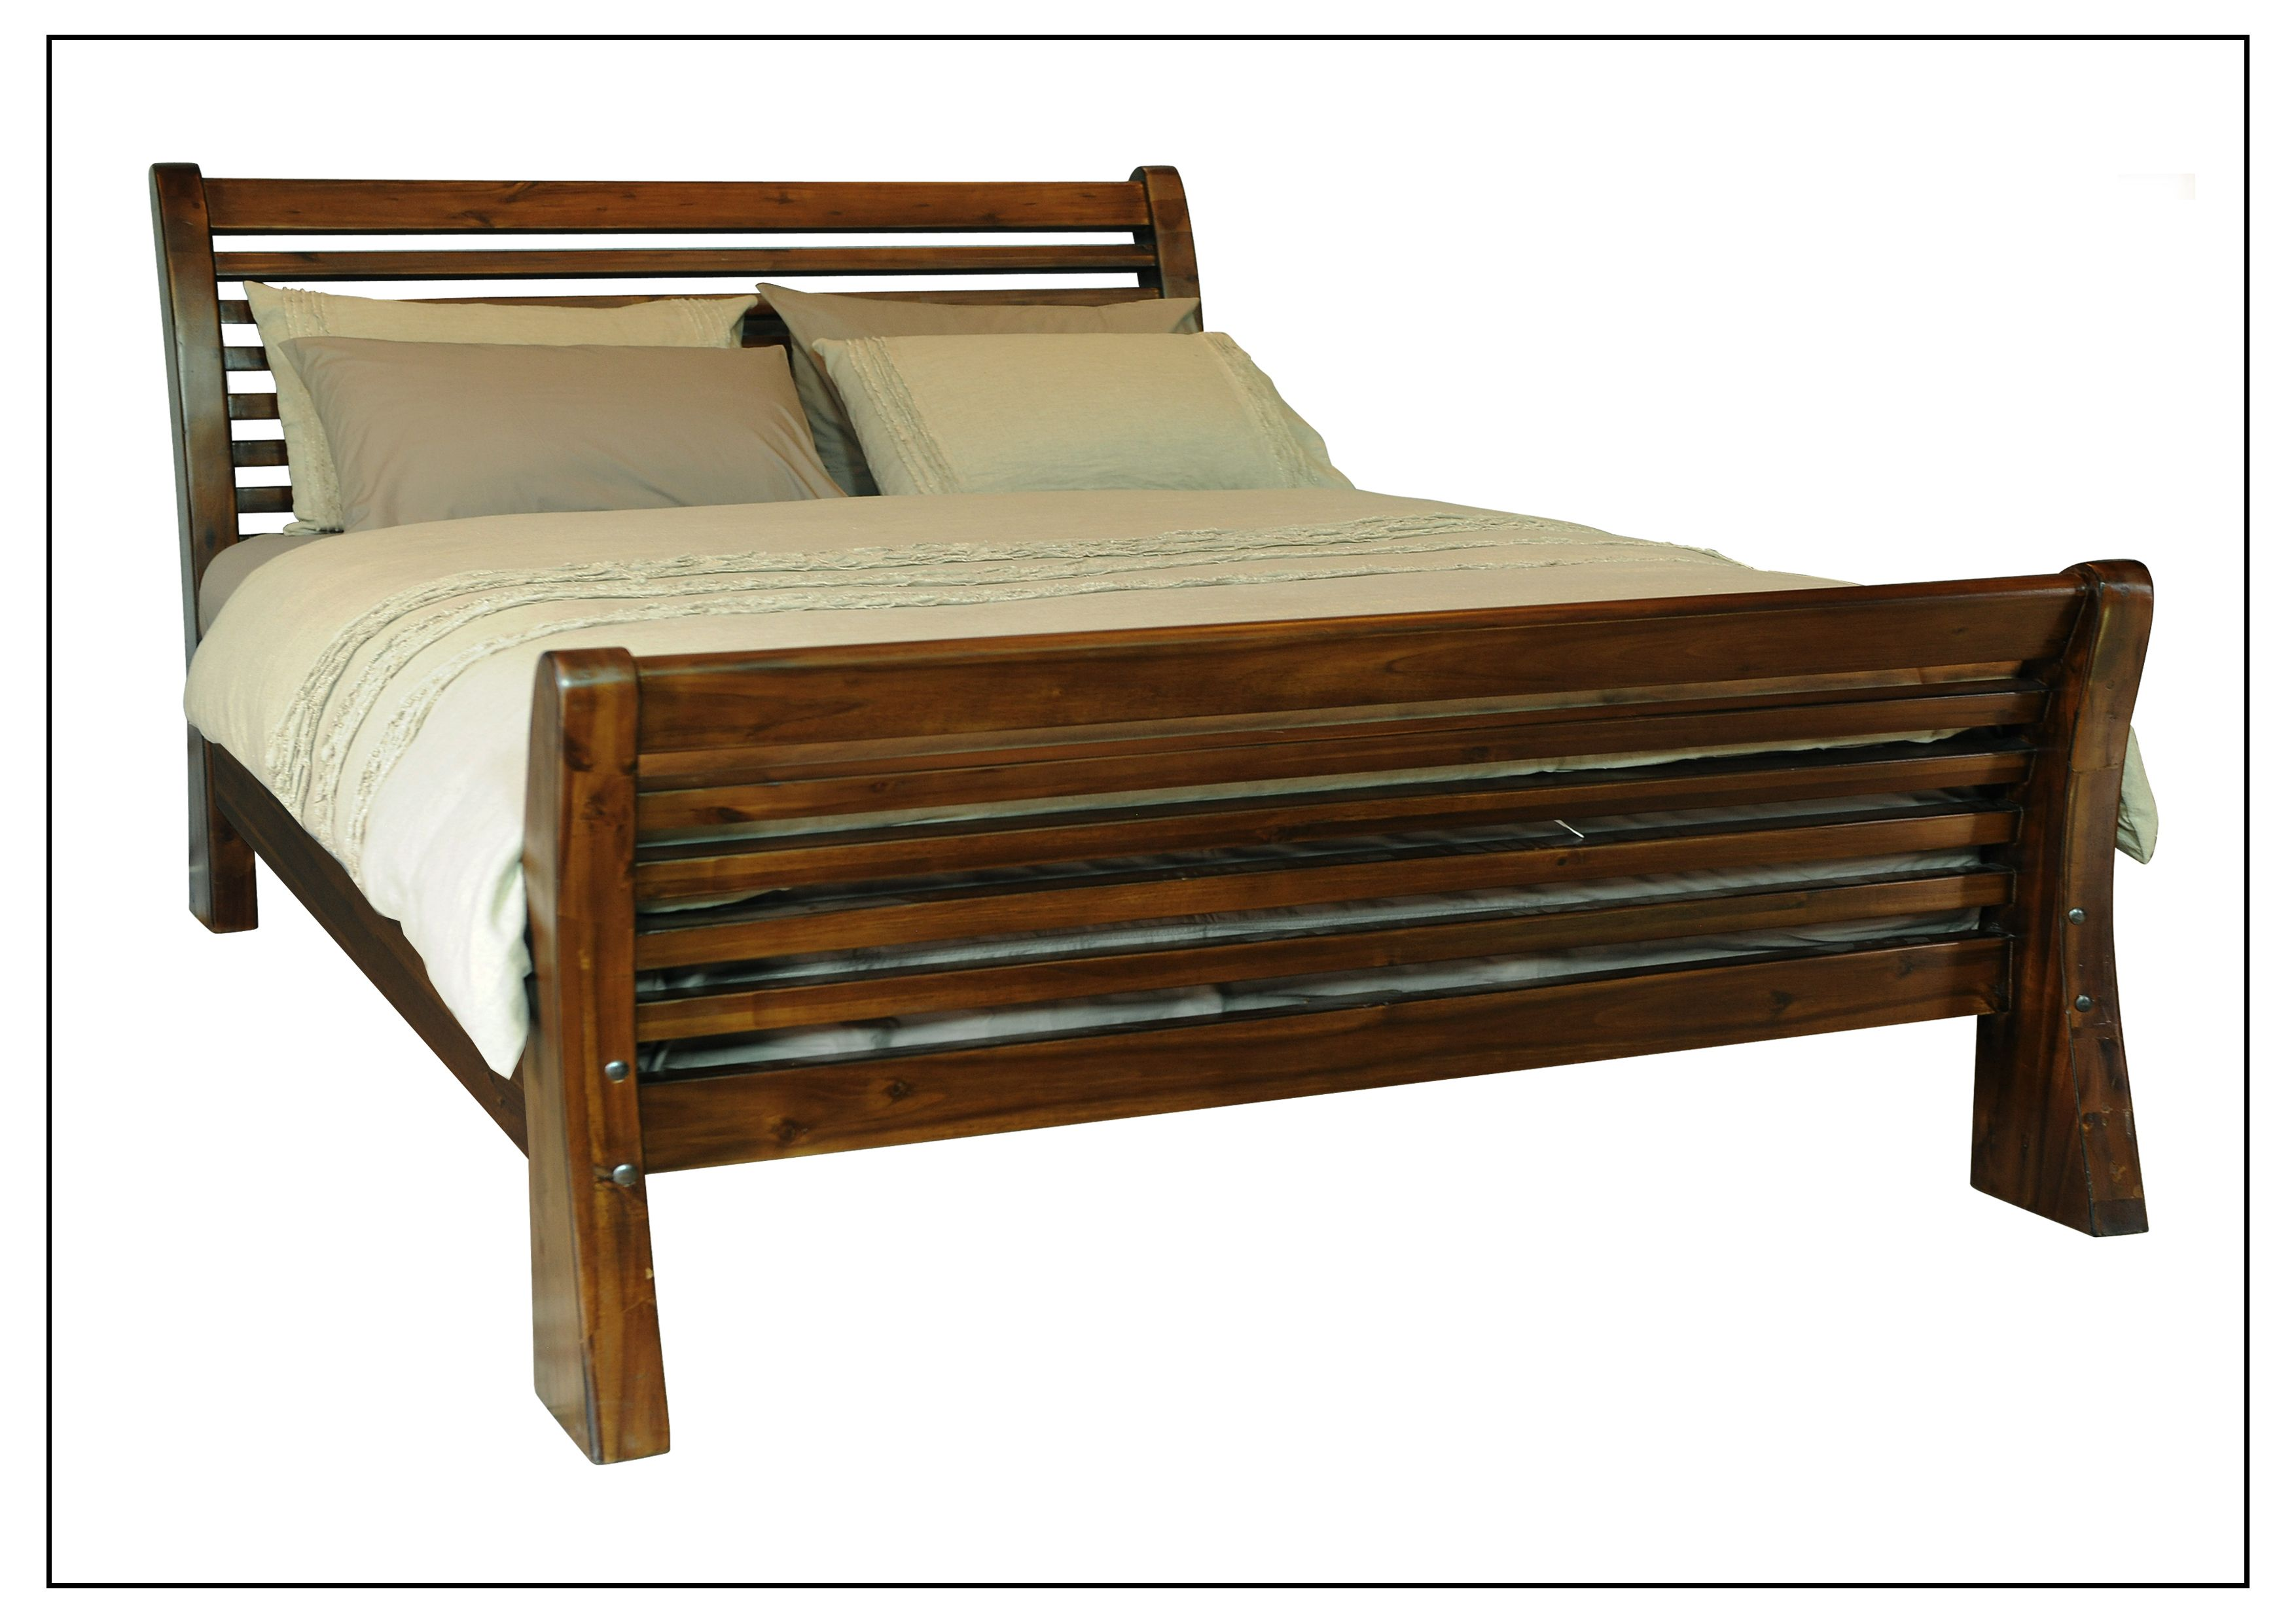 TIBKB016 King Bed Head Height 1250mm, Foot Height 570mm